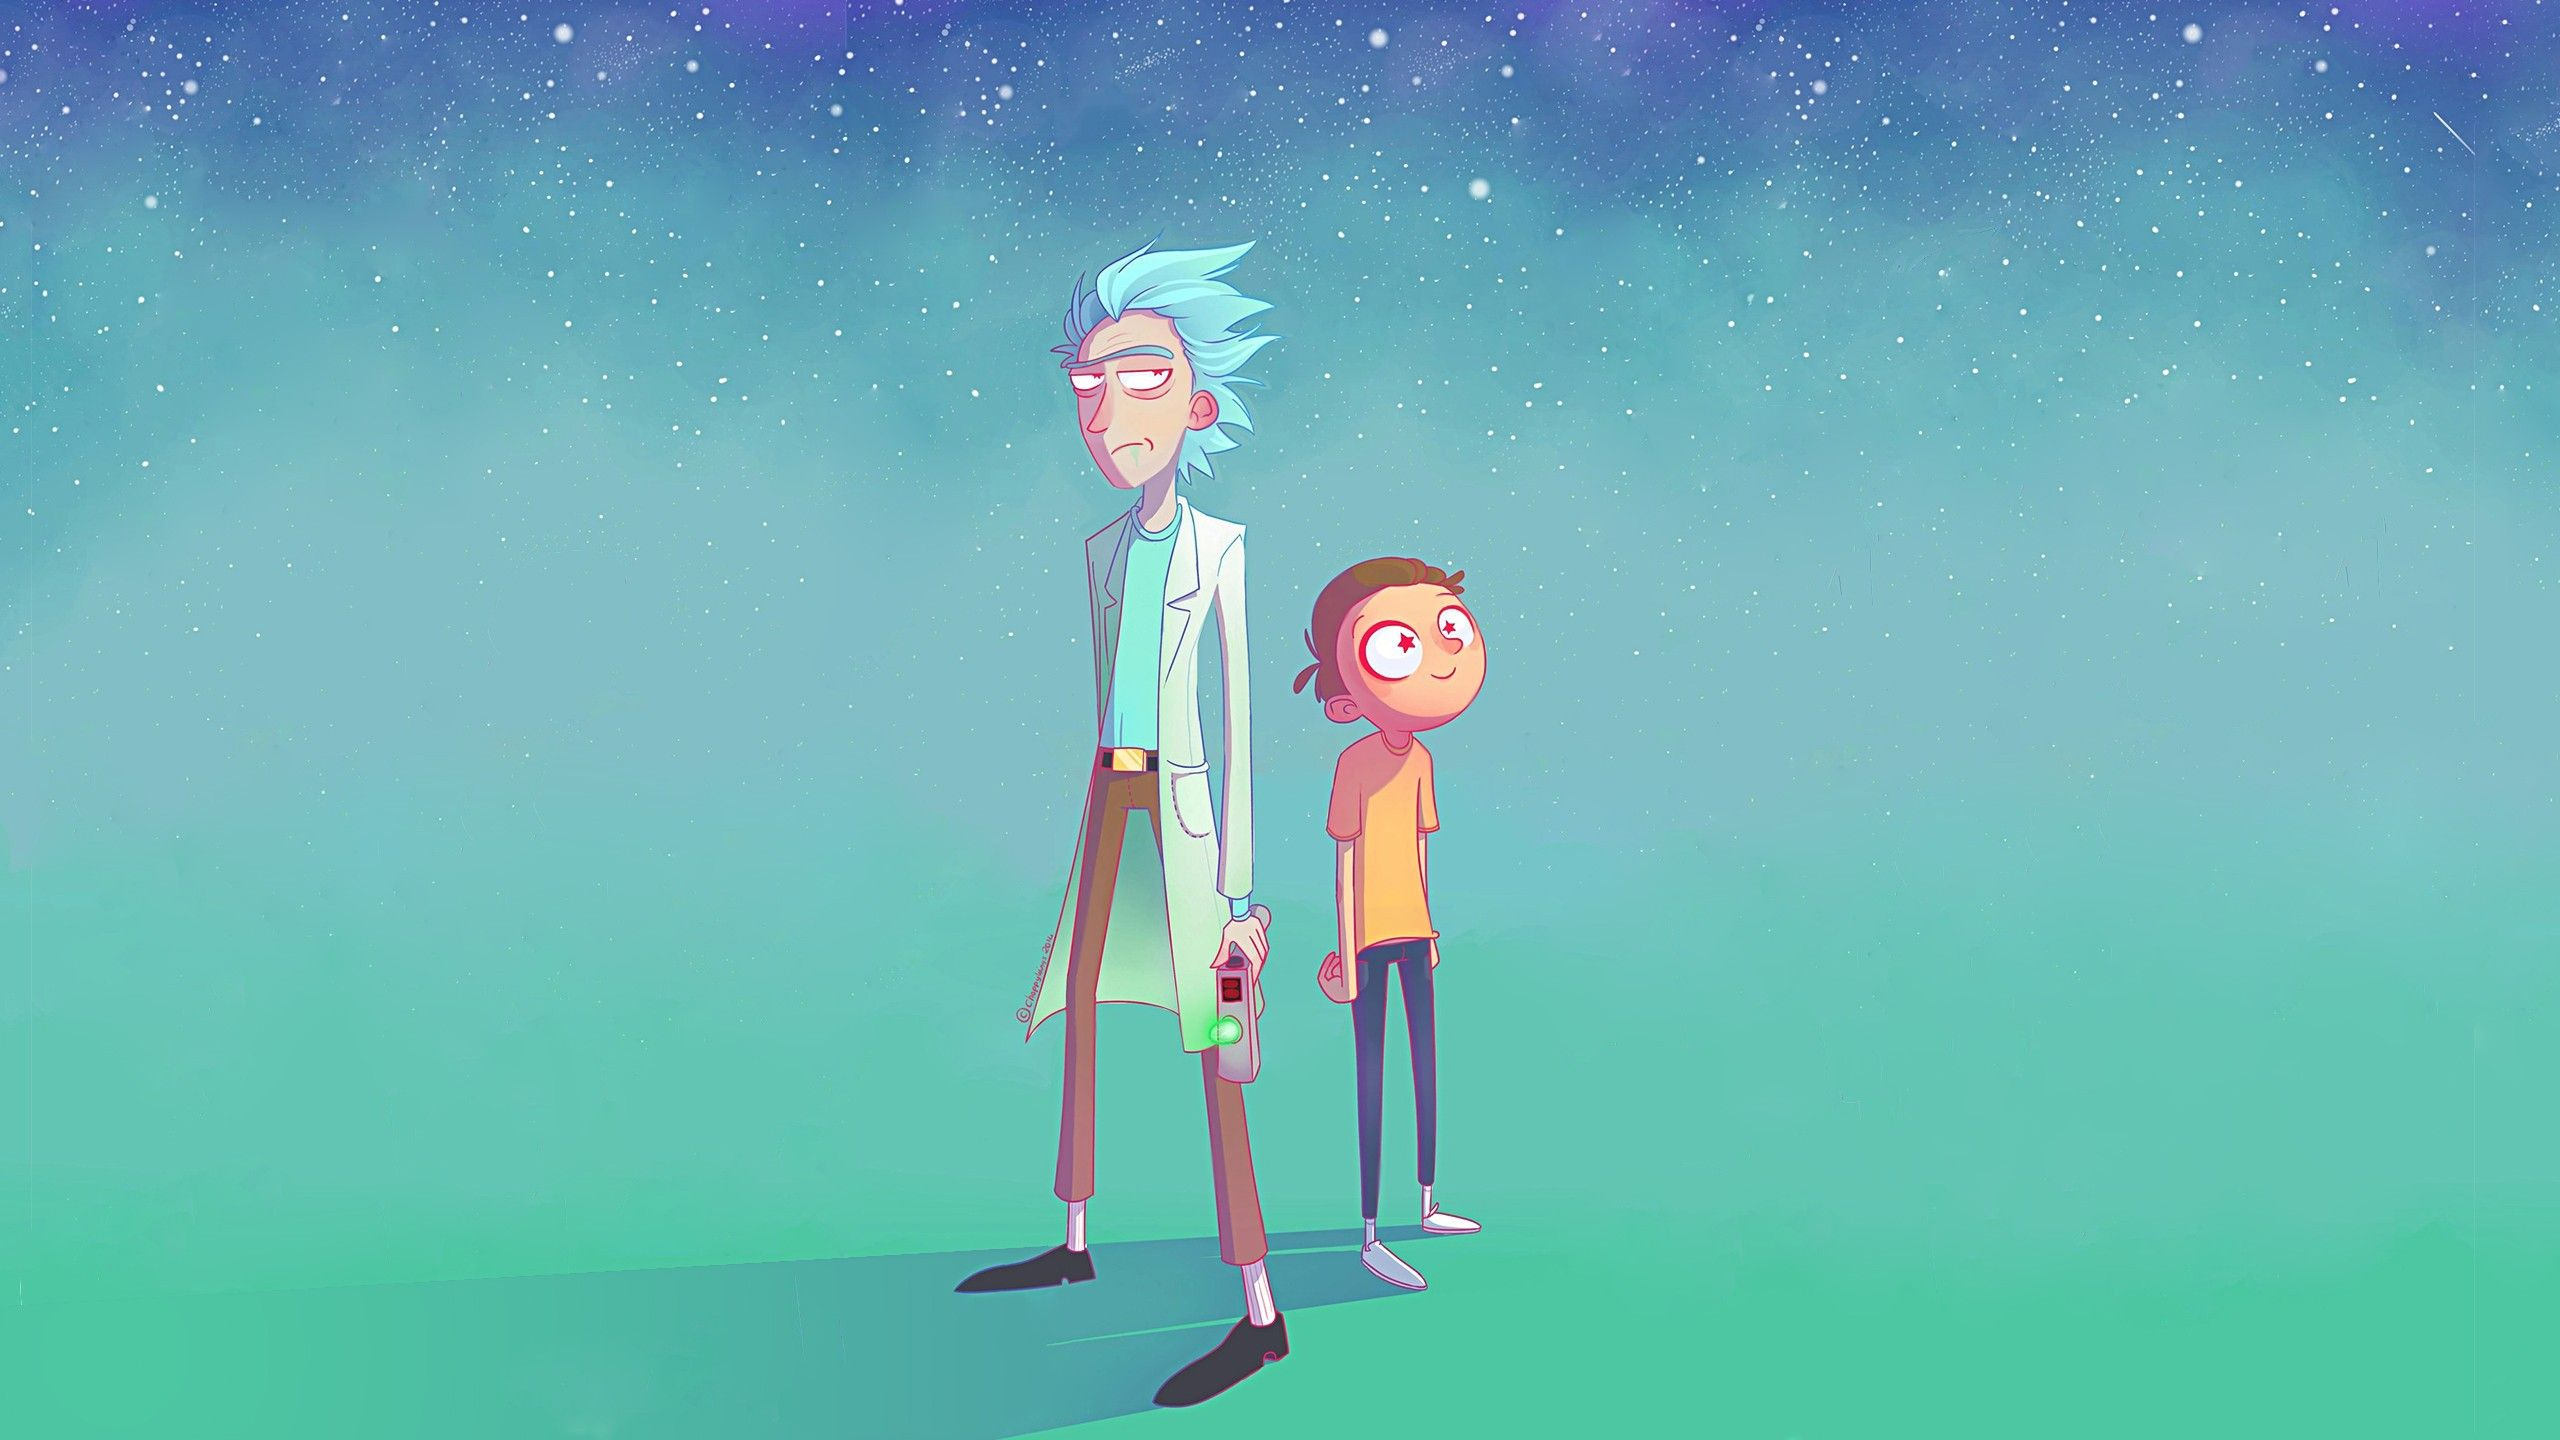 rick and morty wallpaper trippy